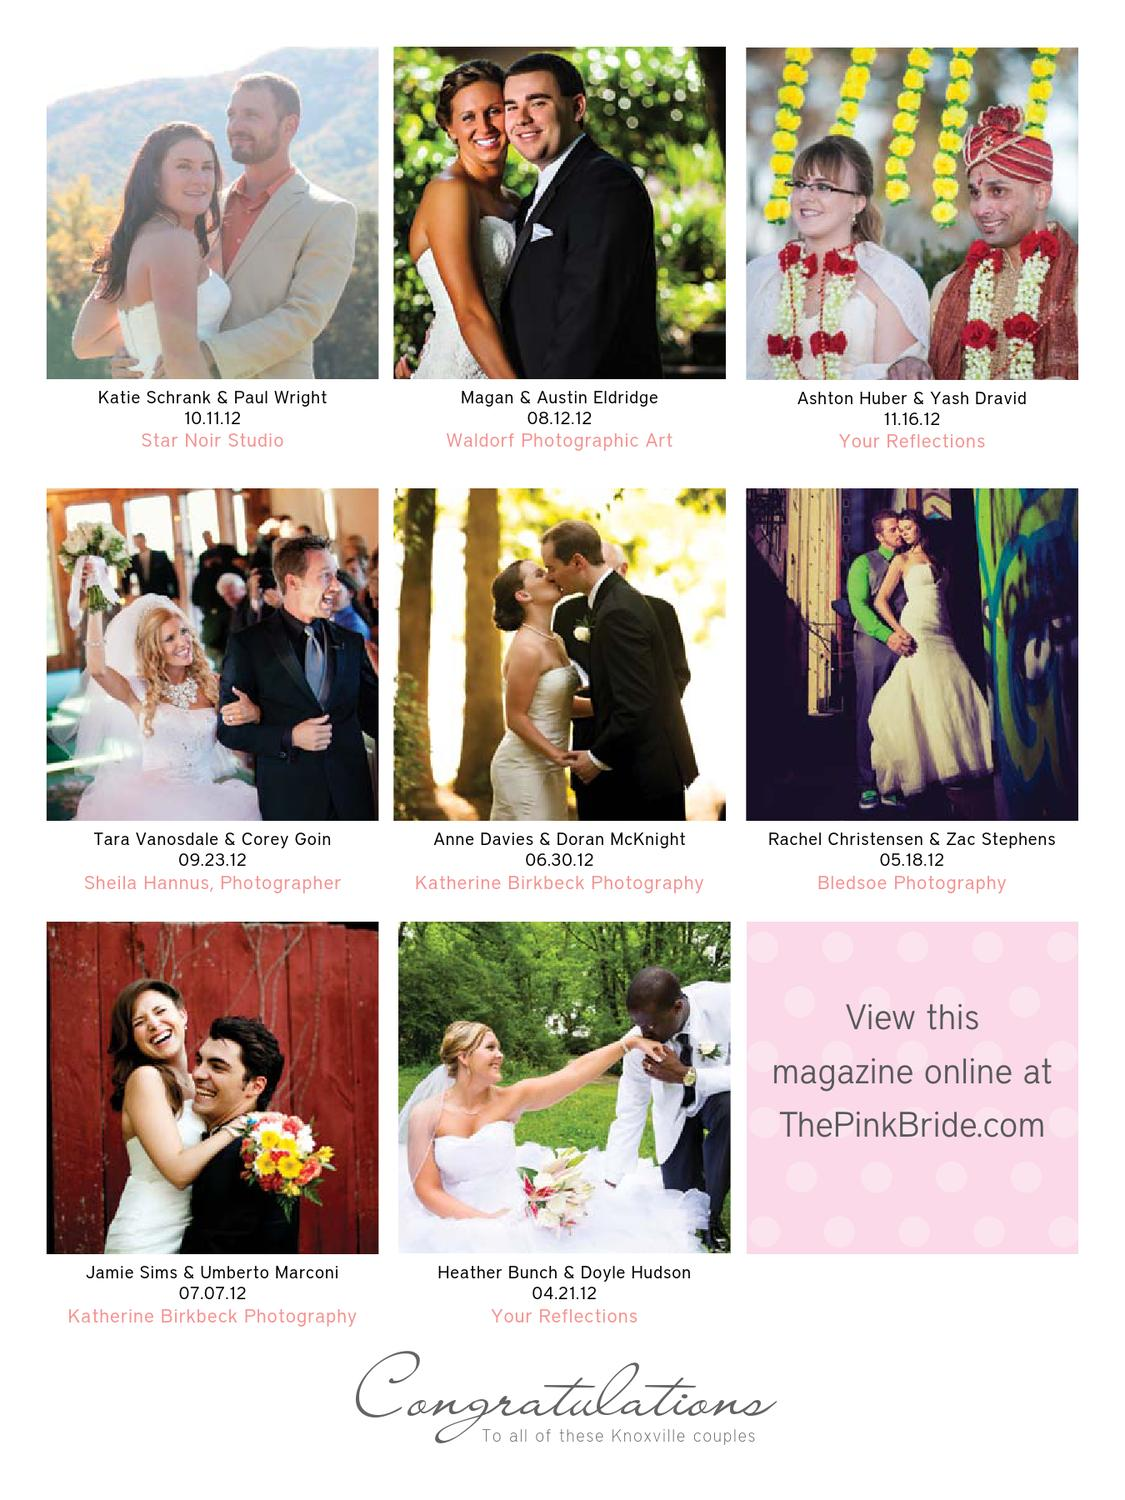 Knoxville Pink Bride Magazine Winter 2013 by The Pink Bride - issuu